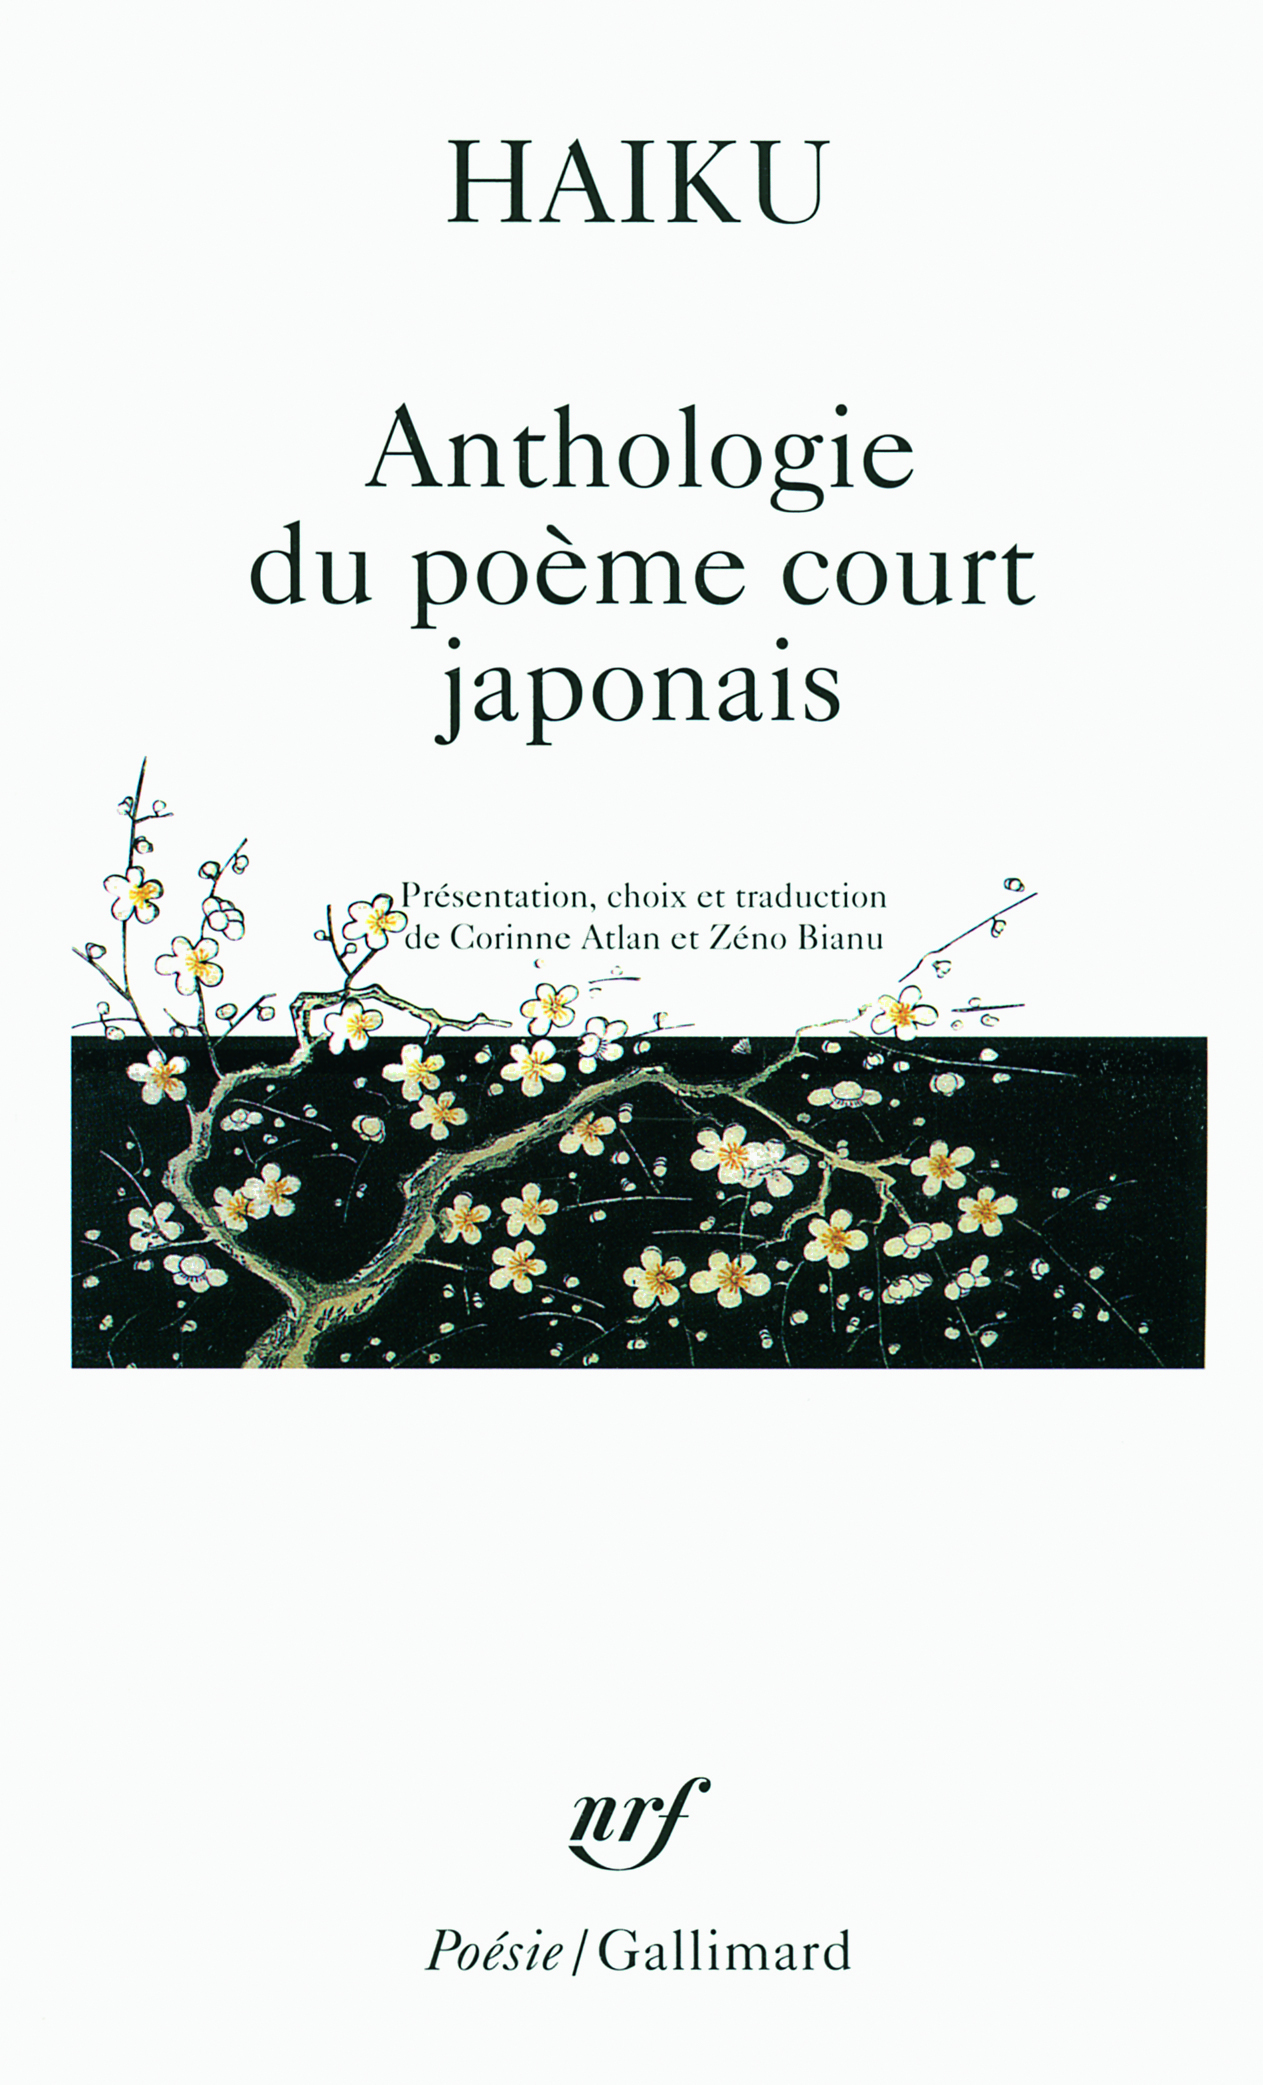 HAIKU - ANTHOLOGIE DU POEME COURT JAPONAIS